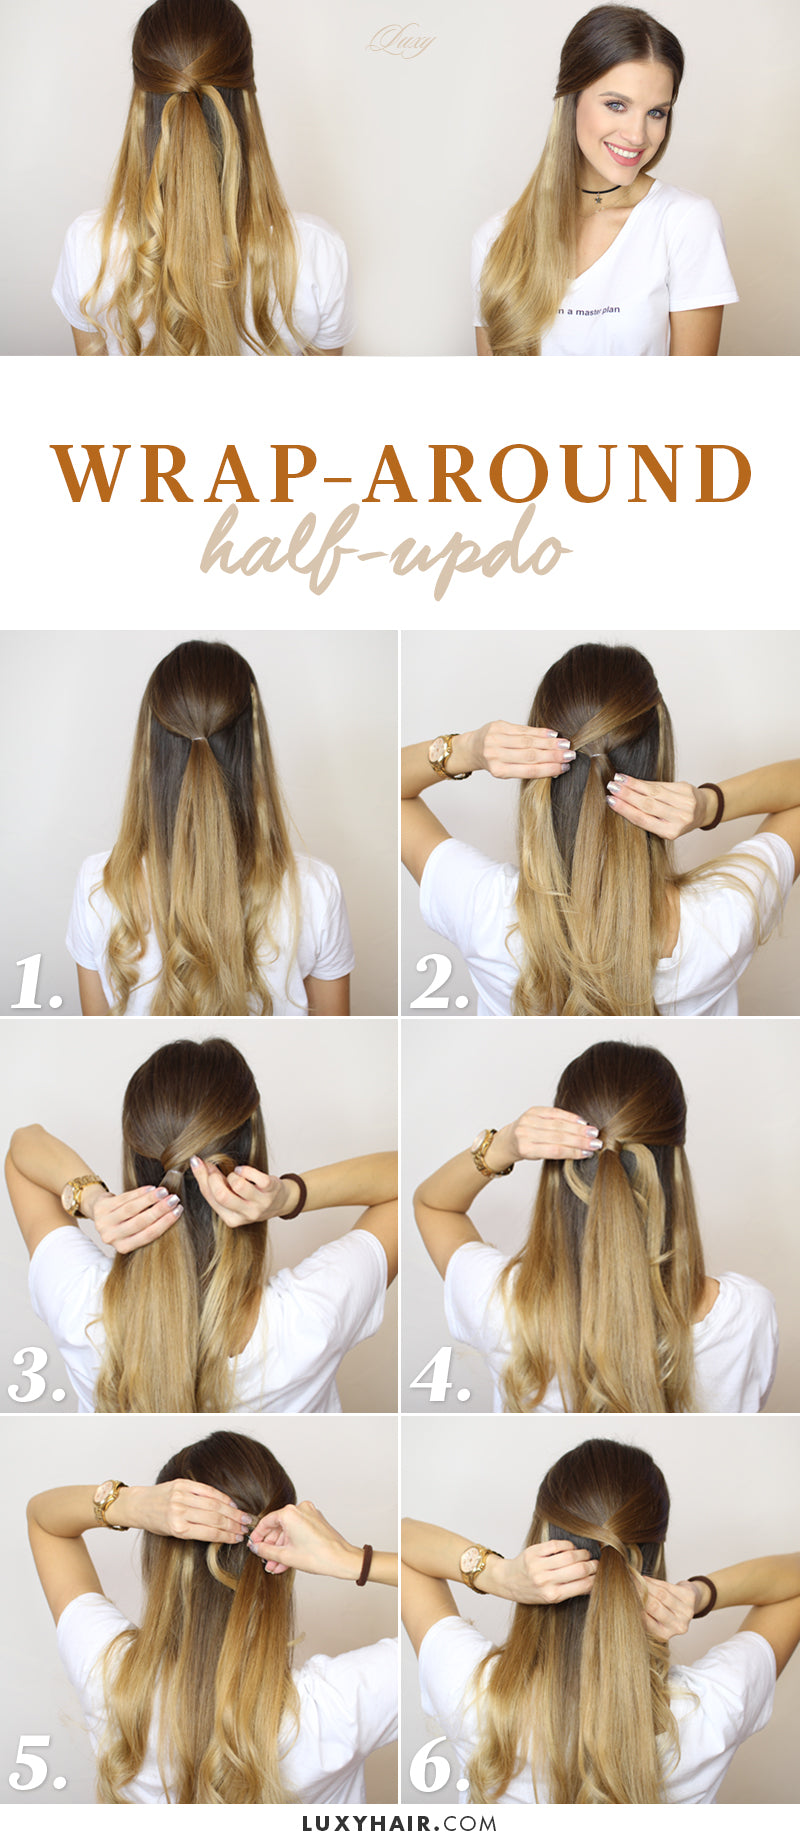 A Fabulous Collection of 10 Easy Hairstyle That Only Take 5-Minutes!